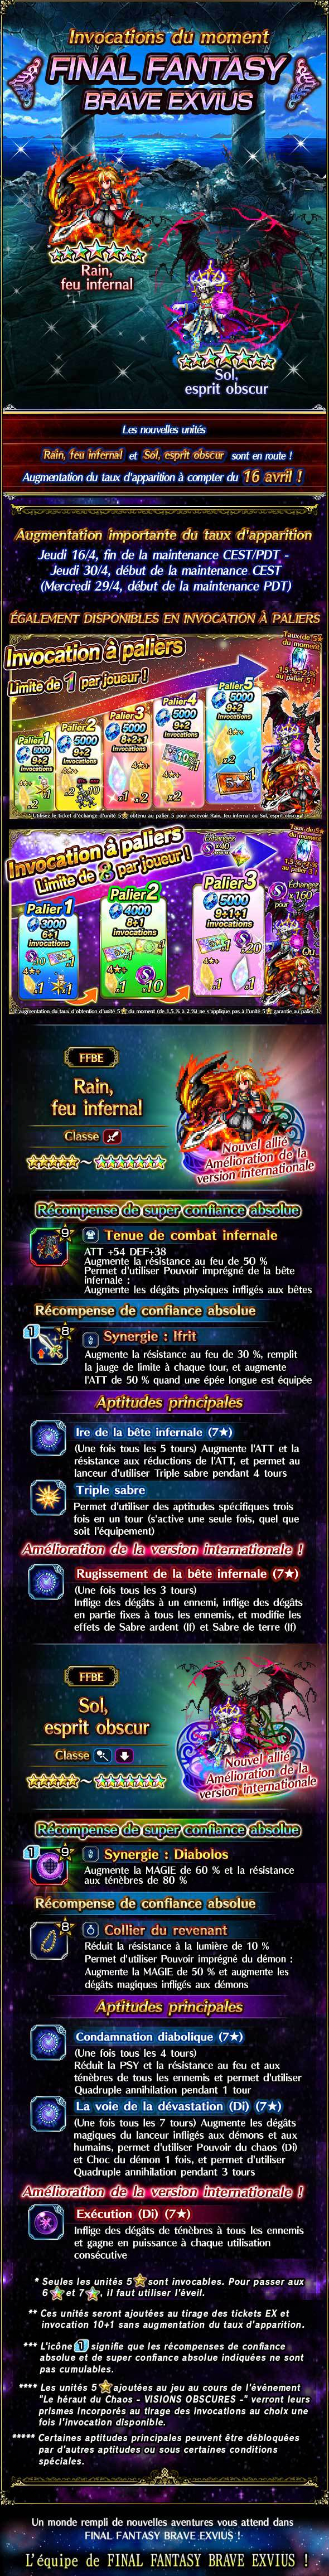 Invocations du moment, boutique d'échange, tickets 5★ garantie et tickets d'échange - FFBE (IFRain/DSSol) - du 16/04 au 30/04/20 20200414IFRainDSolFeaturedSummon